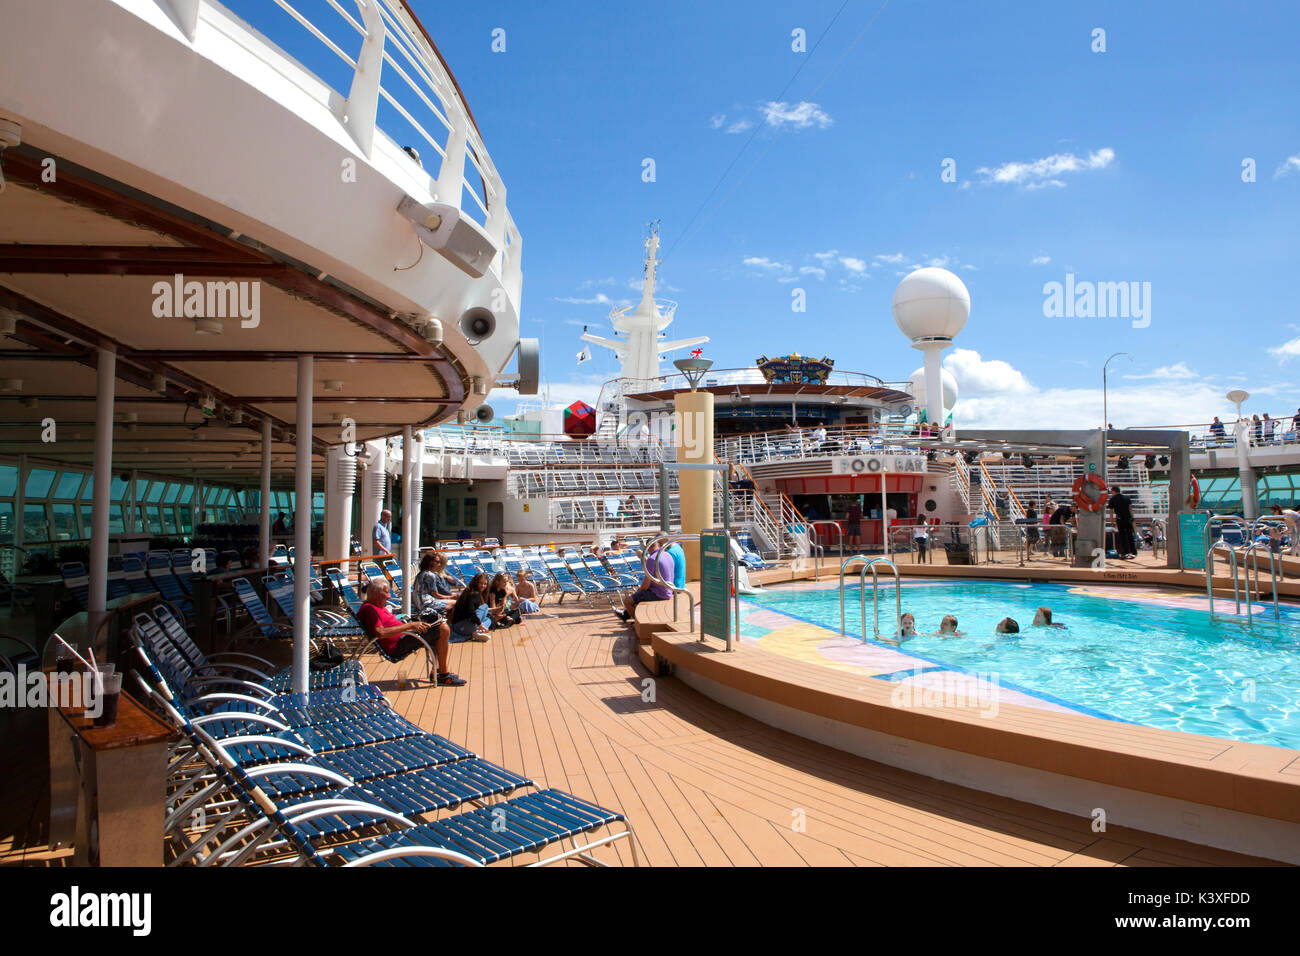 Pool deck 11 of Royal Caribbean Navigator of the Seas cruise ship Stock Photo